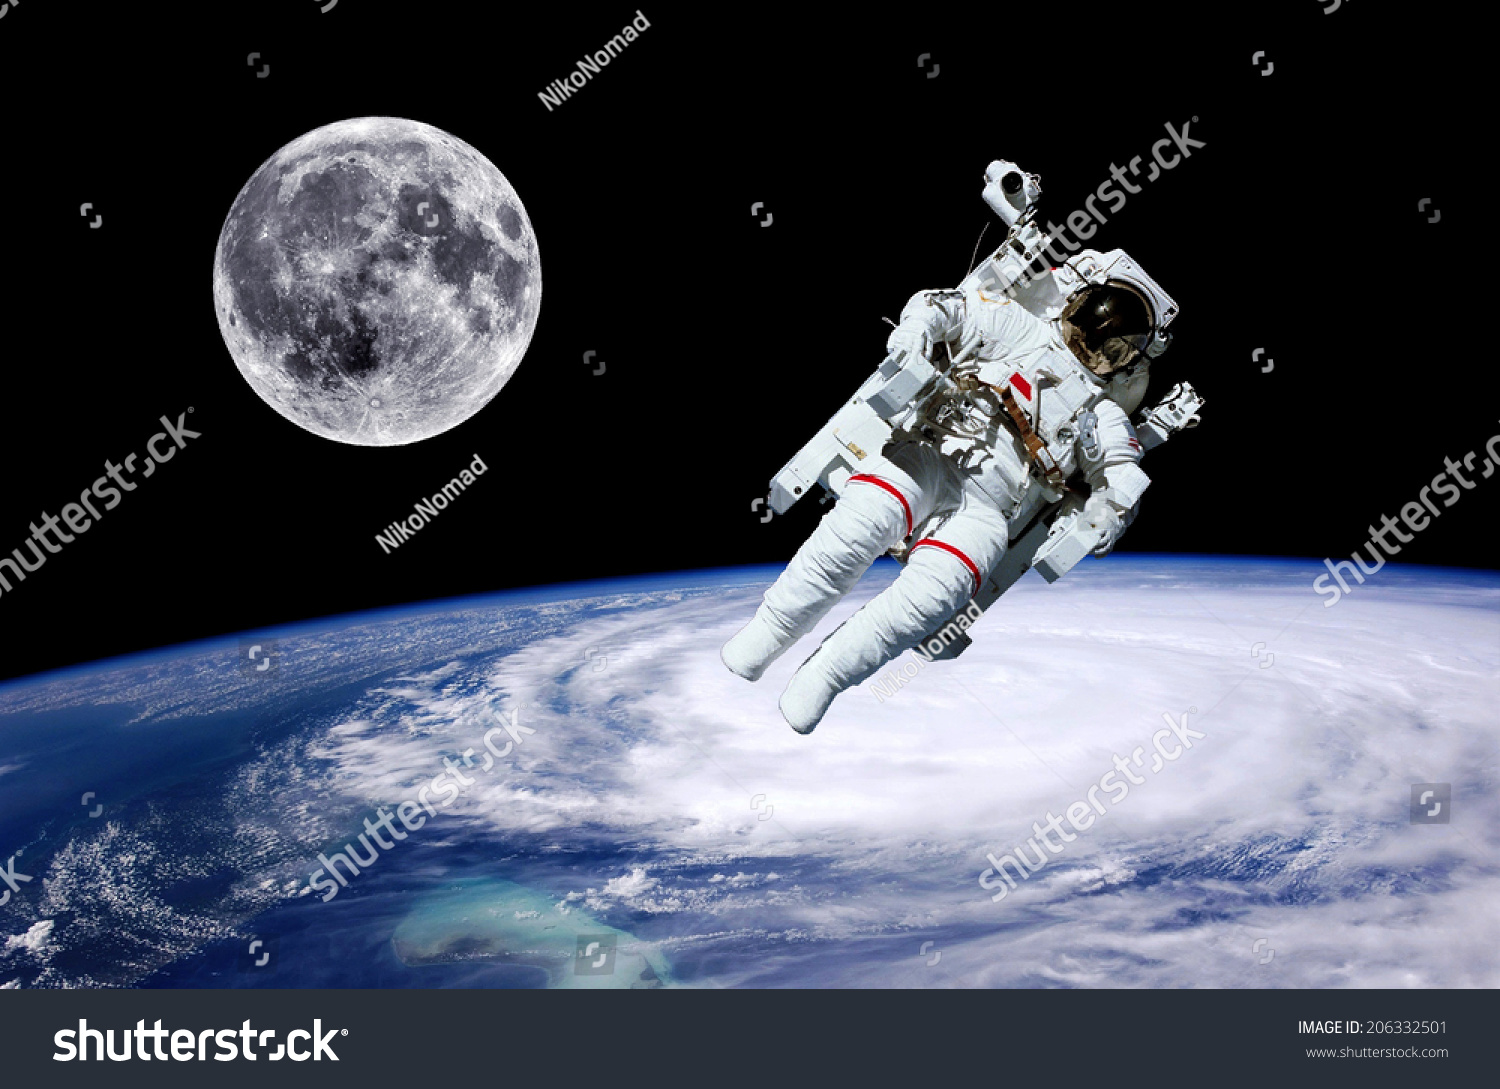 astronaut on moon earth background - photo #21